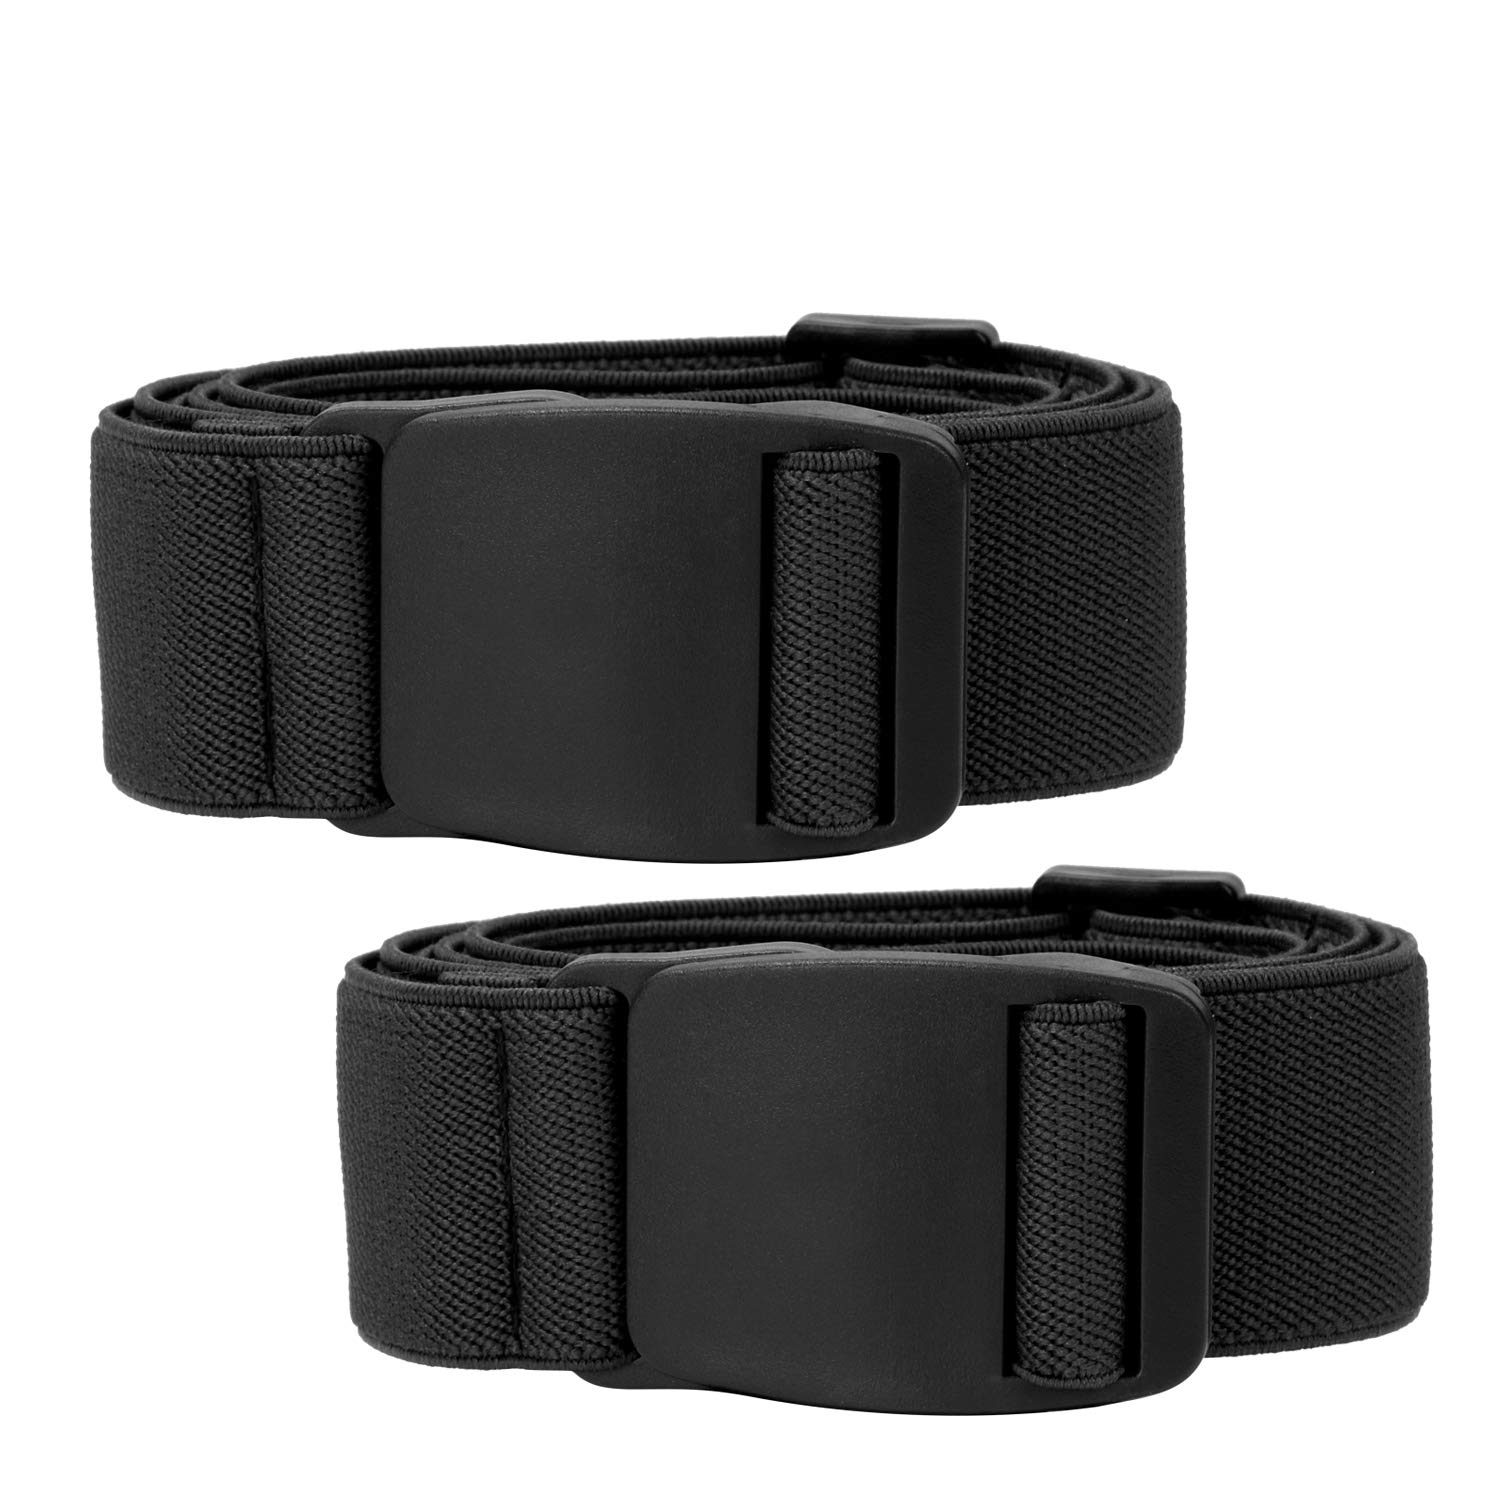 643ec483a1f Men s No Show Elastic Stretch Belt Invisible Casual Web Belt Quick Release  Flat Plastic Buckle at Amazon Men s Clothing store